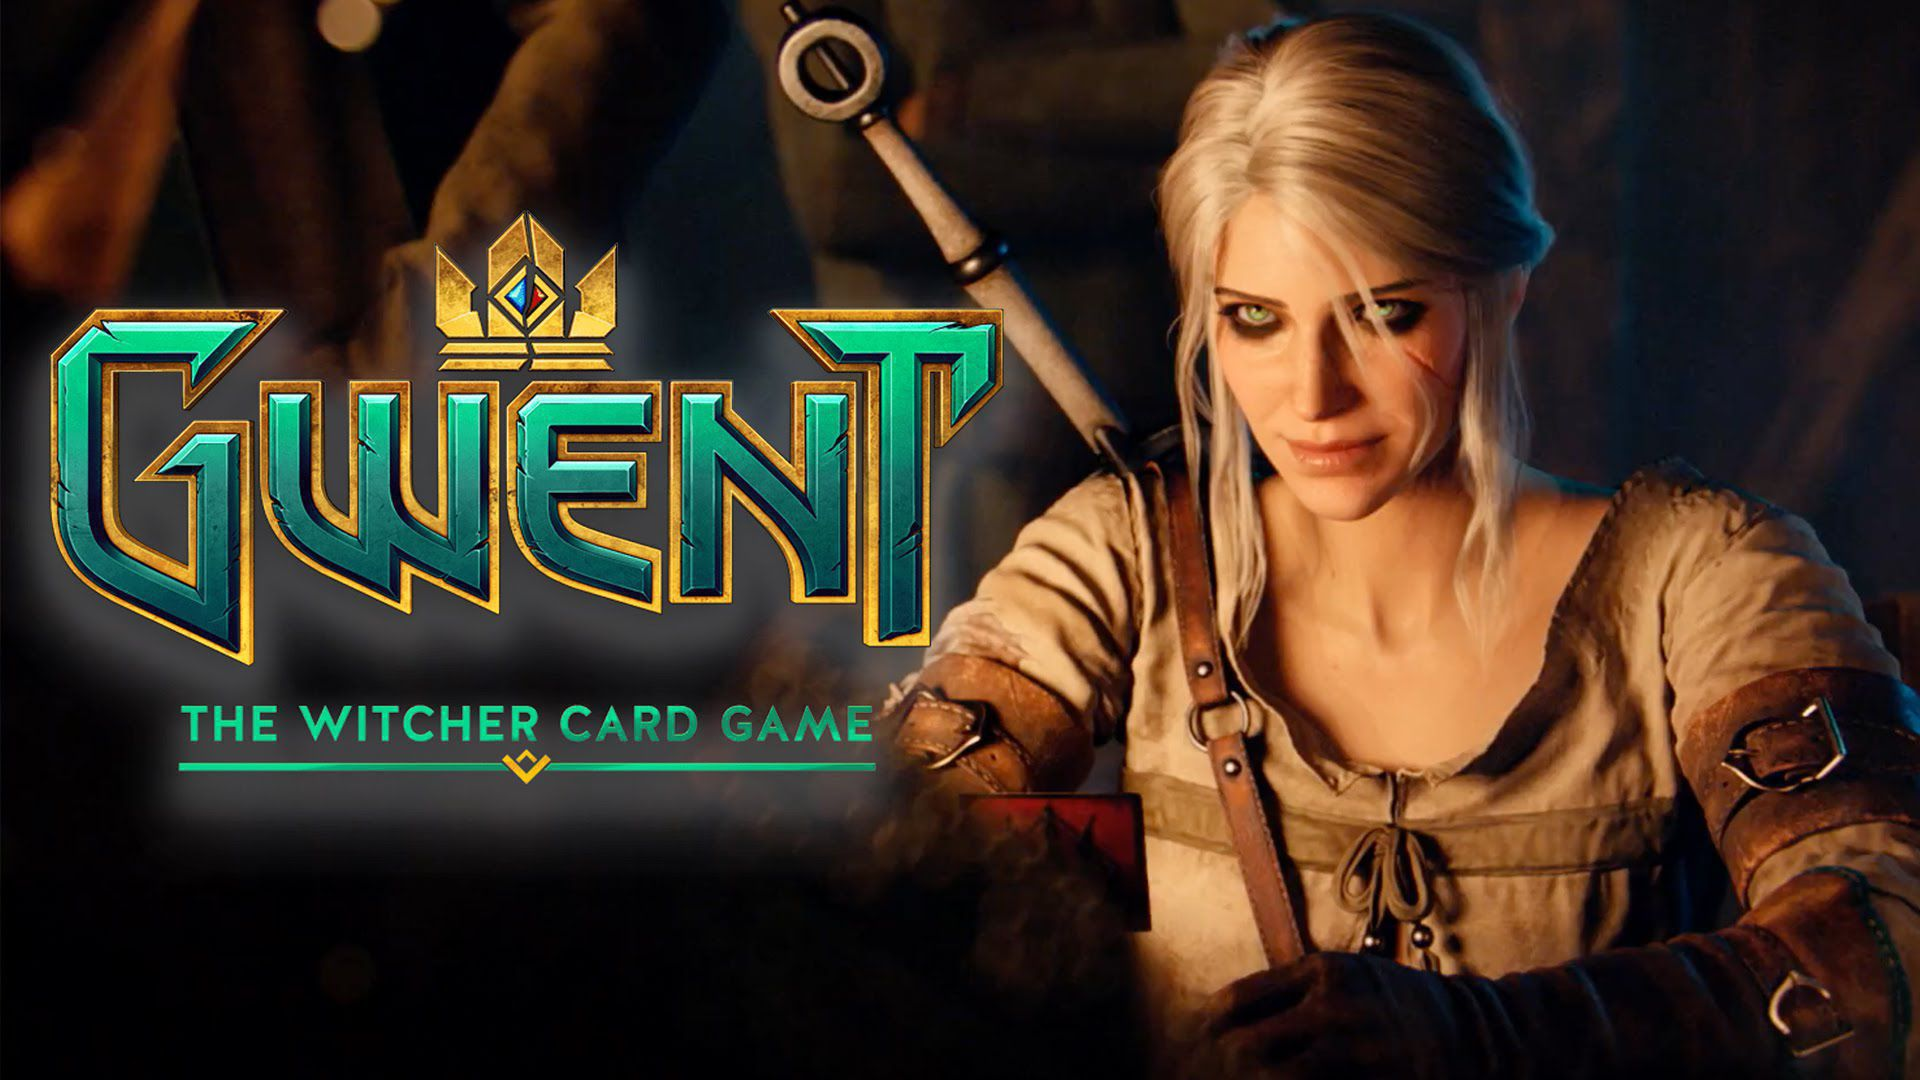 Gwent The Witcher Card Game HD Wallpaper